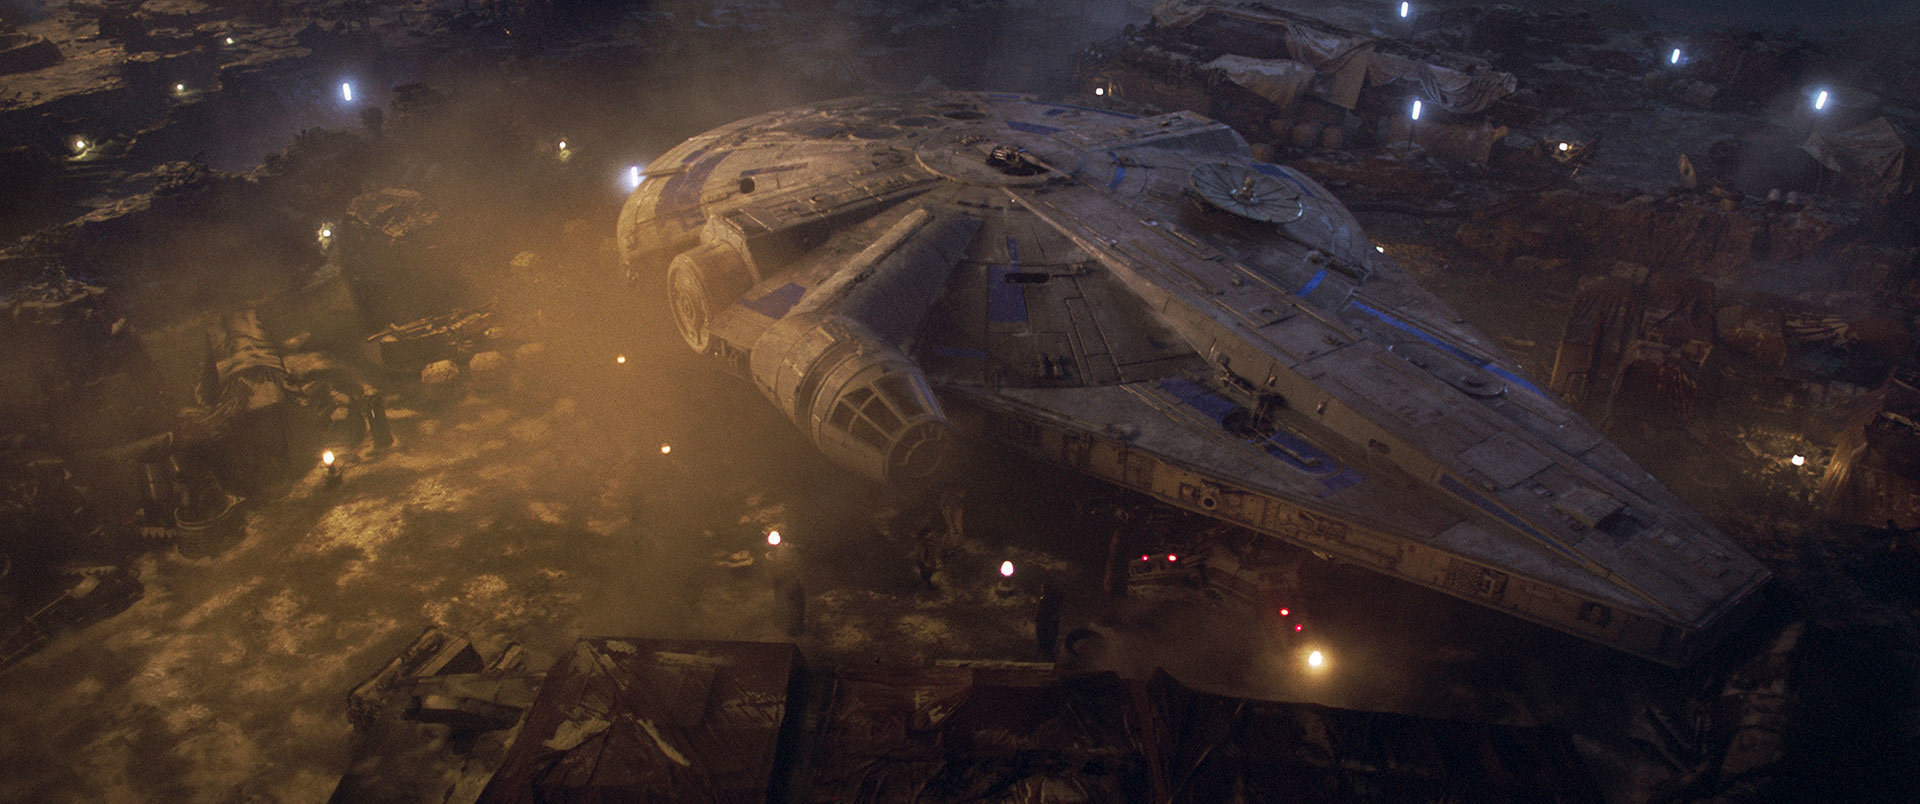 Millennium Falcon - Solo: A Star Wars Story